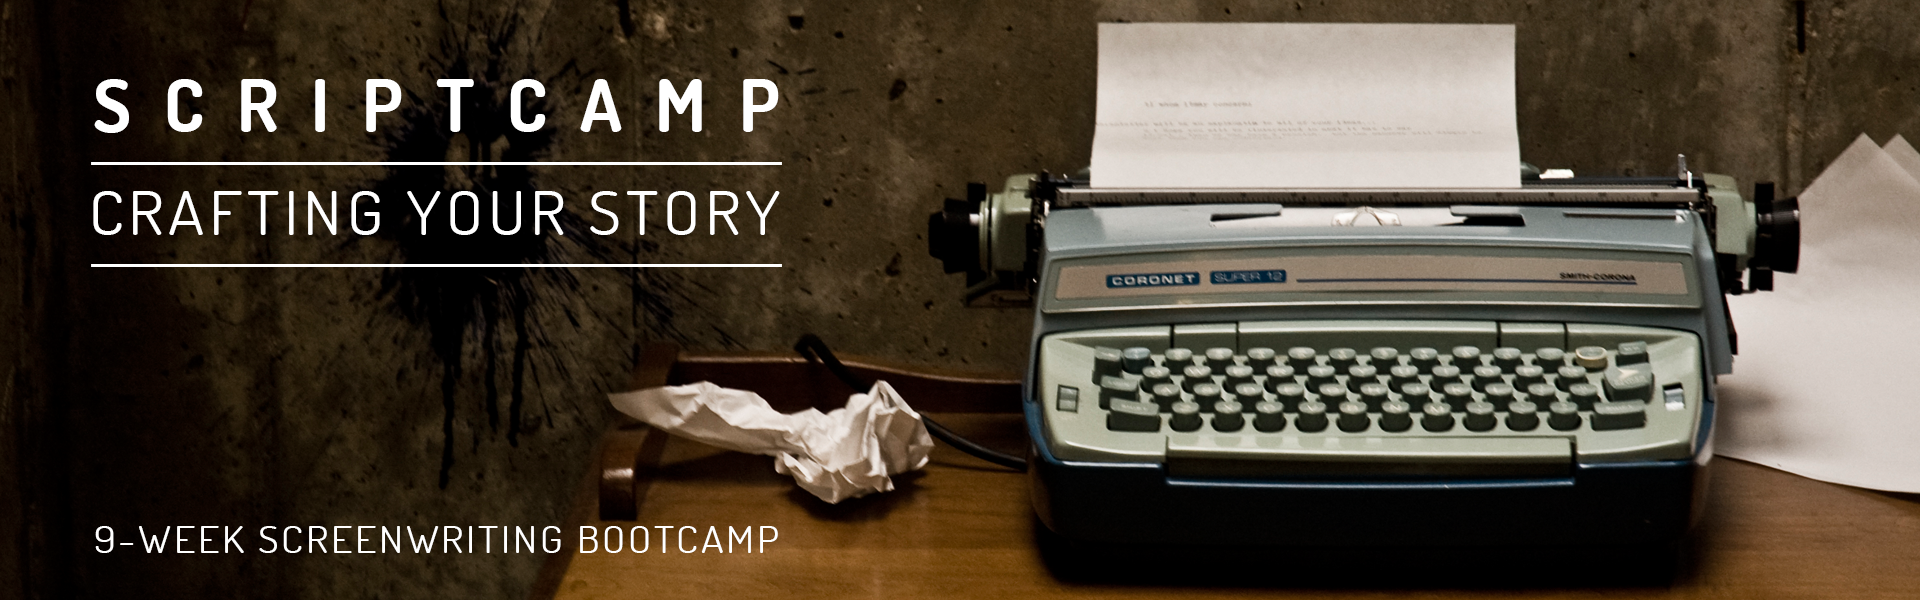 CH_Slider_ScriptCamp_CraftingYourStory_1920x400